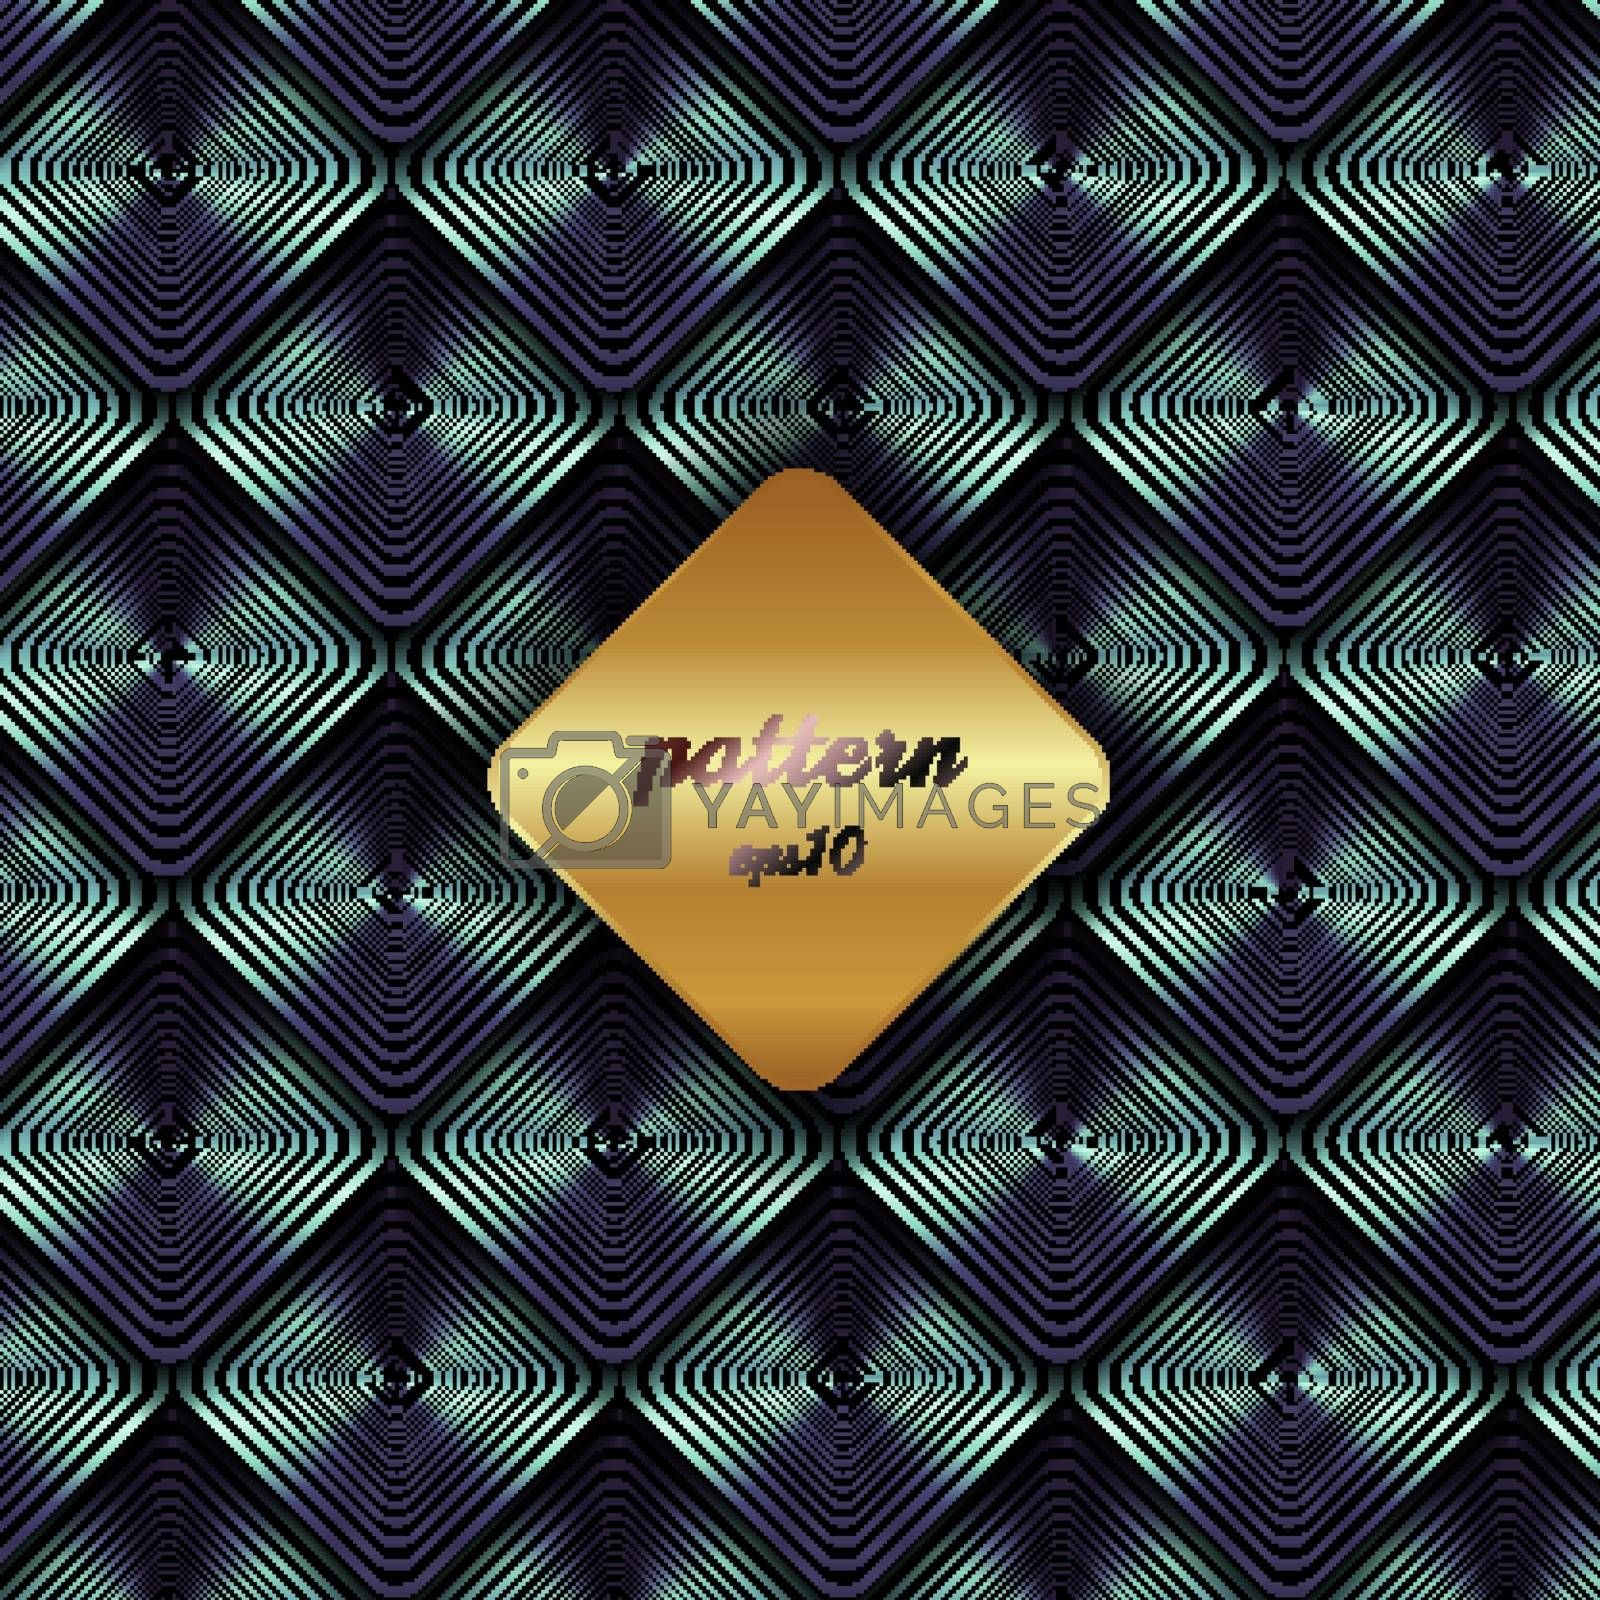 Abstract metallic geometric blue square pattern with shadow and golden background label. Luxury style. Vector illustration